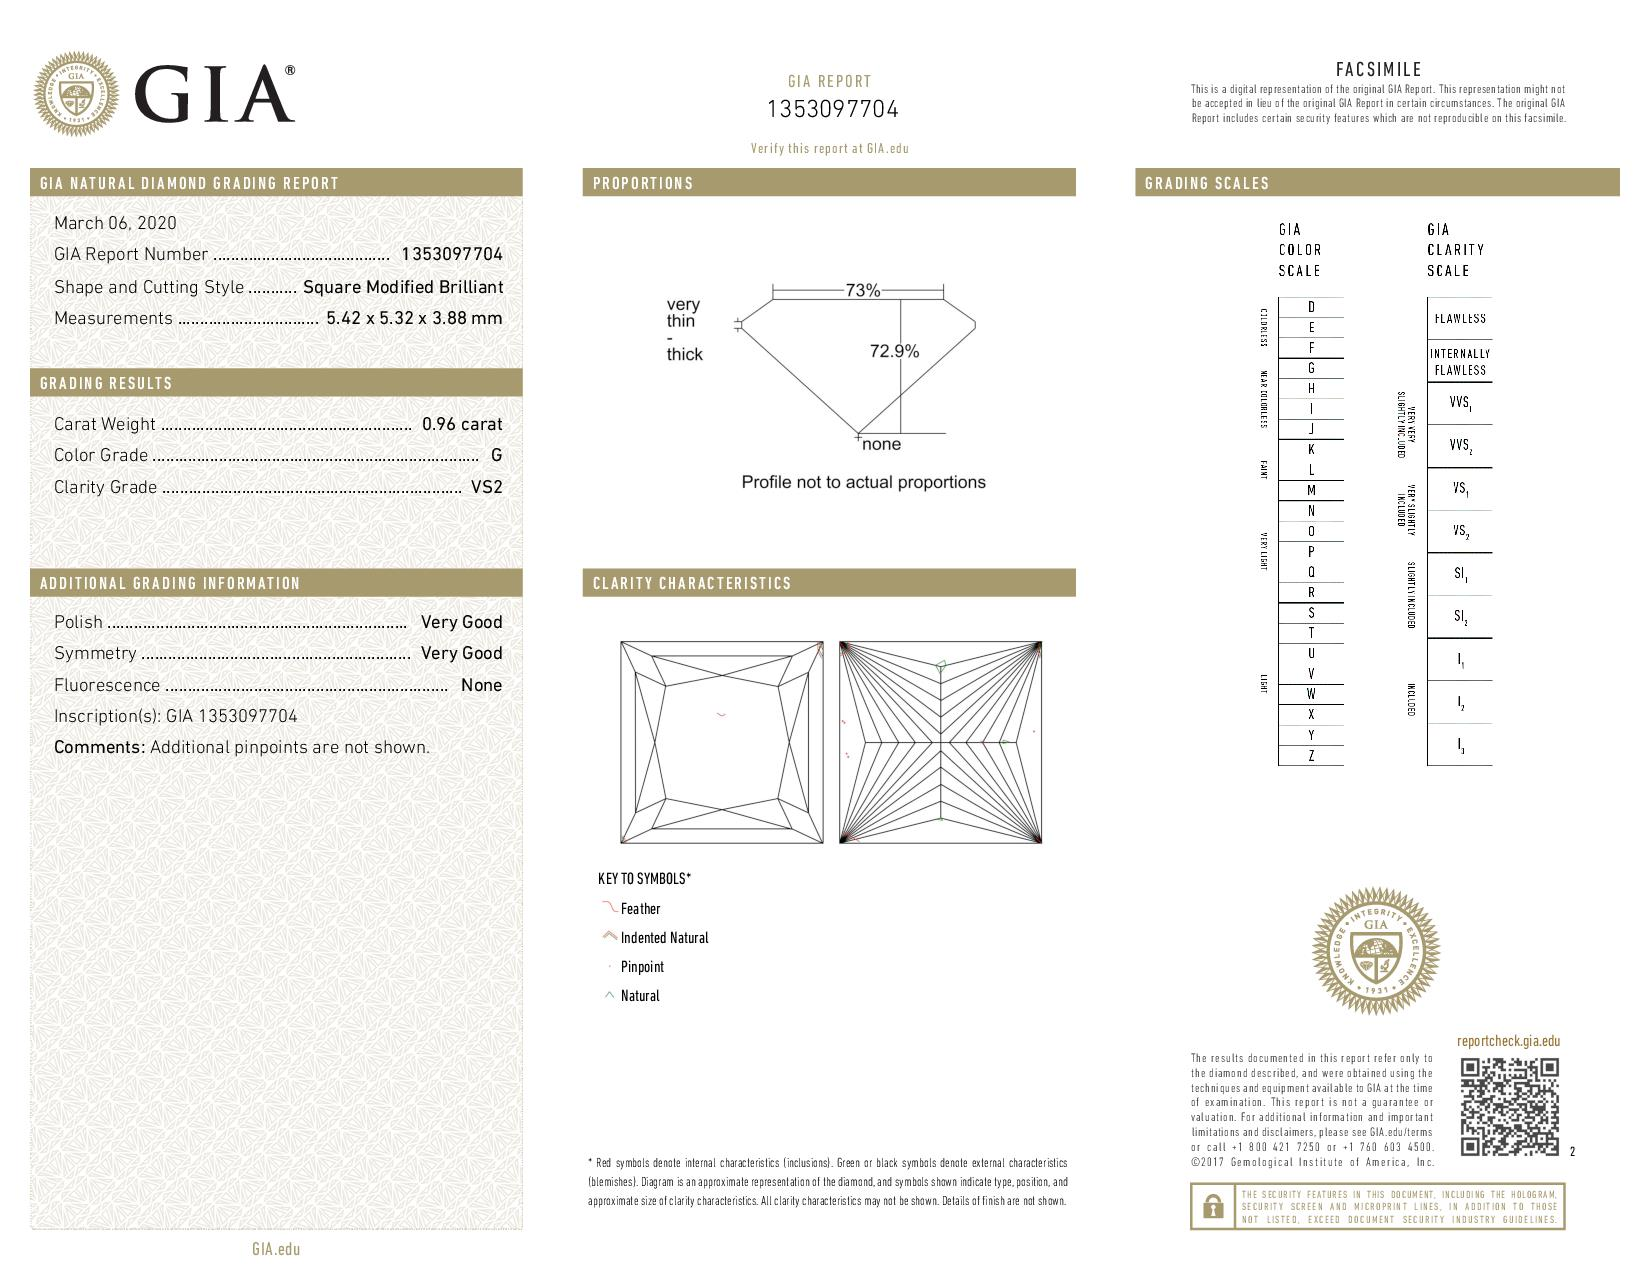 This is a 0.96 carat princess shape, G color, VS2 clarity natural diamond accompanied by a GIA grading report.